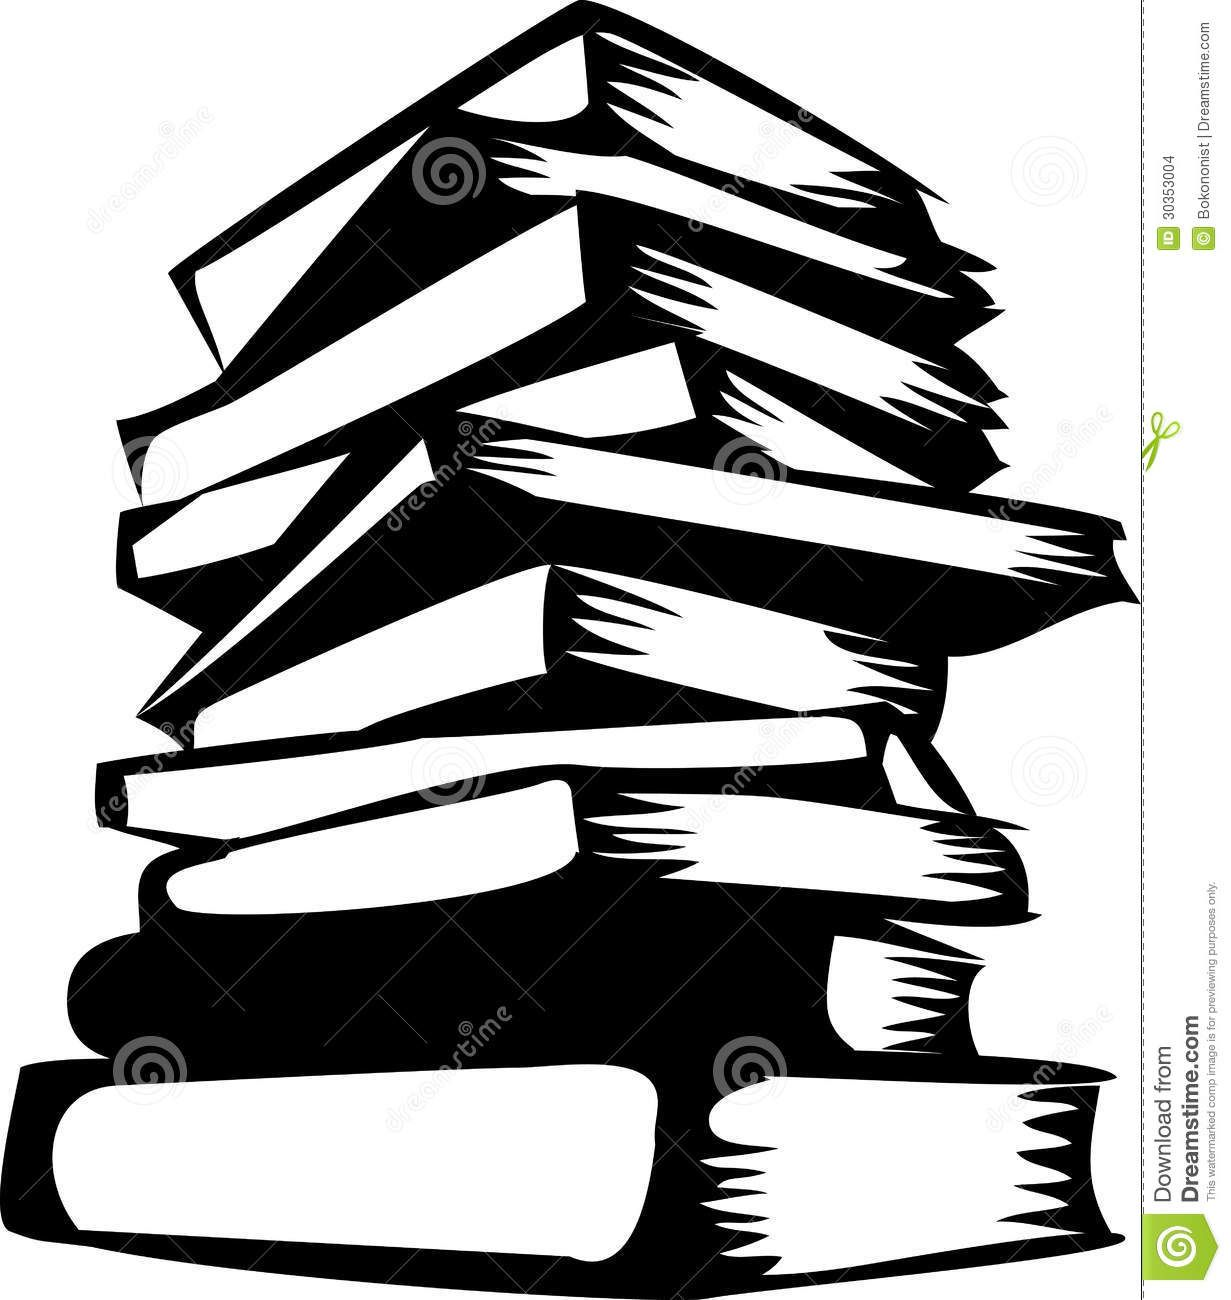 Girl at a bookstore clipart black and white jpg transparent Stacked books Silhouette | Use these free images for your websites ... jpg transparent